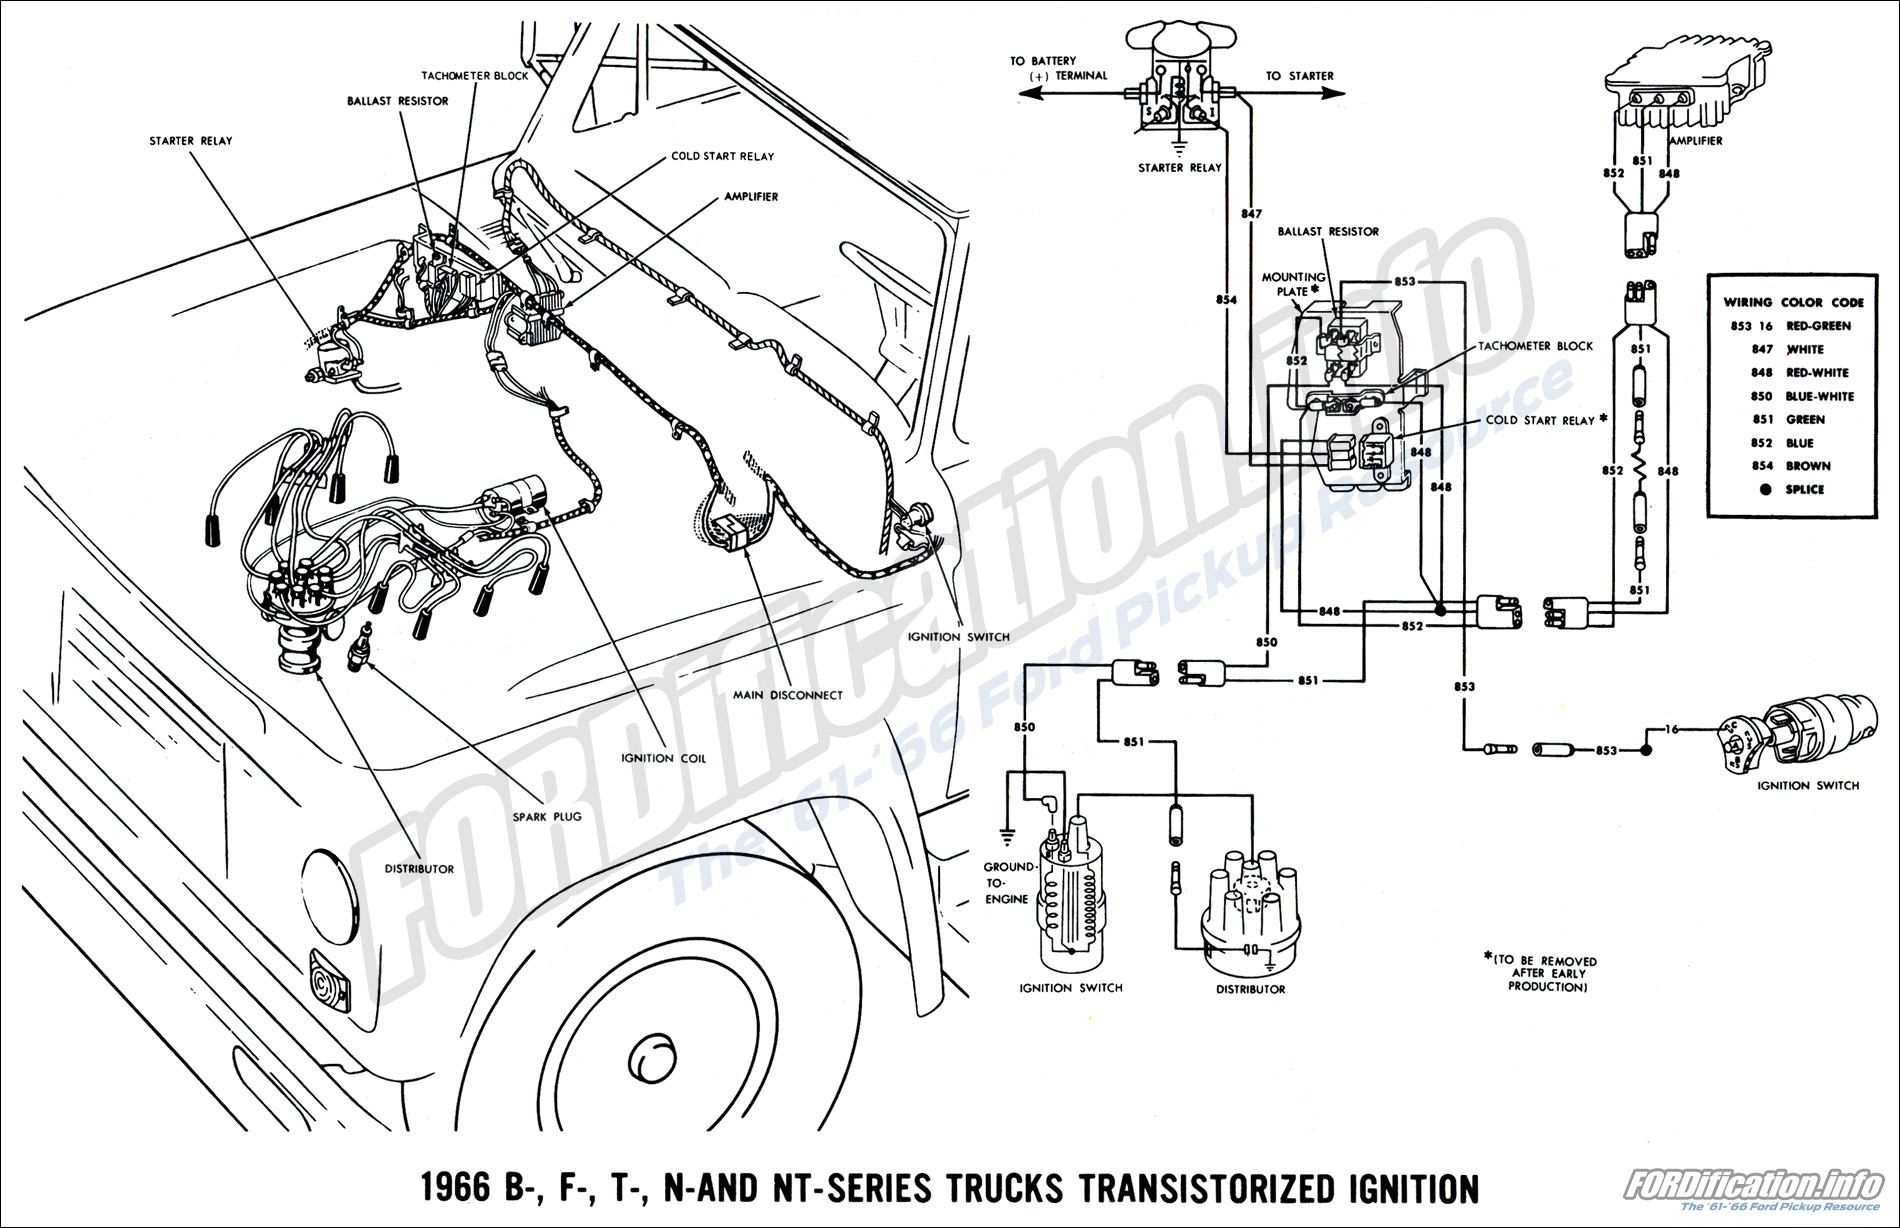 wiring diagram for 1949 ford f100 wiring diagram for 66 ford f100 1966 ford truck wiring diagrams - fordification.info - the ... #4